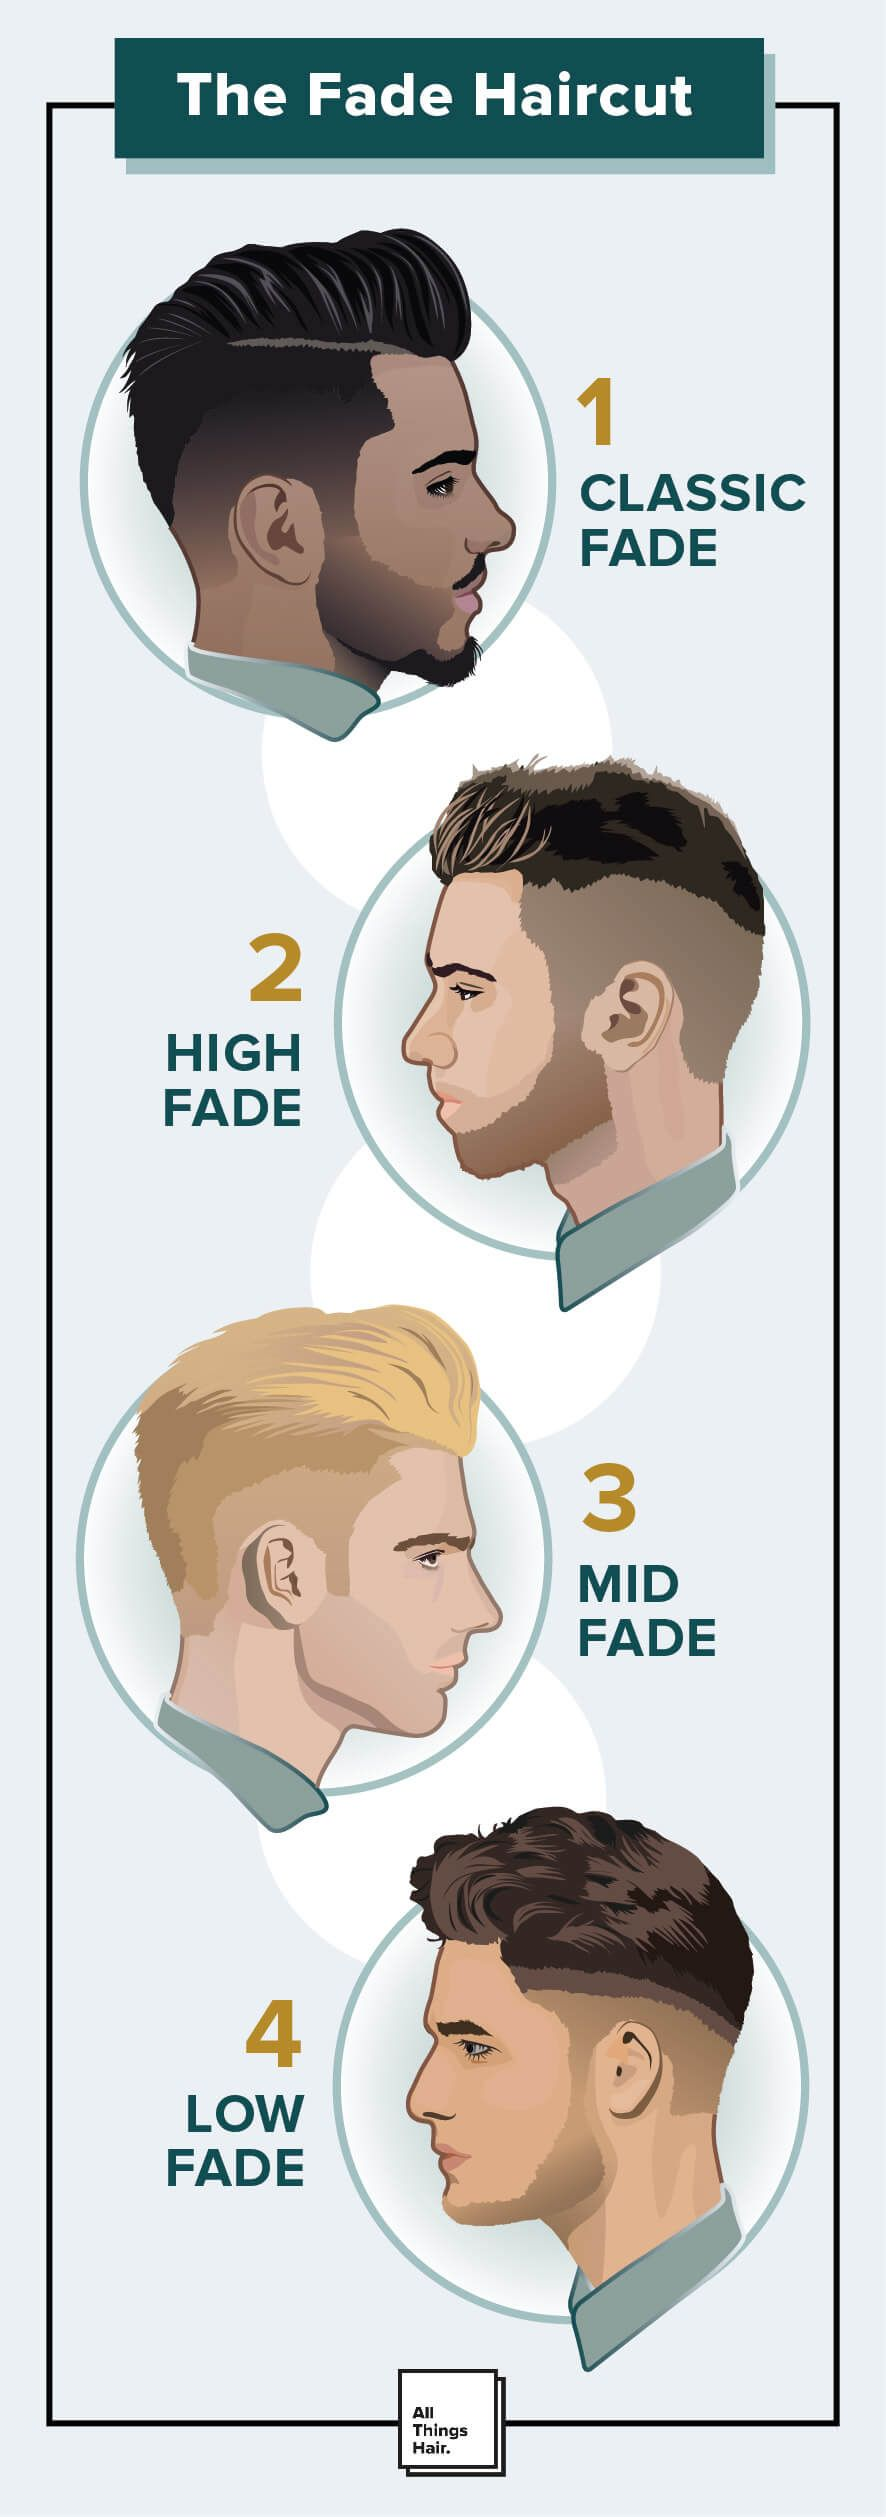 Enjoyable Medium Hairstyles To Make You Look Younger Fade Haircut The O Hairstyles For Men Maxibearus